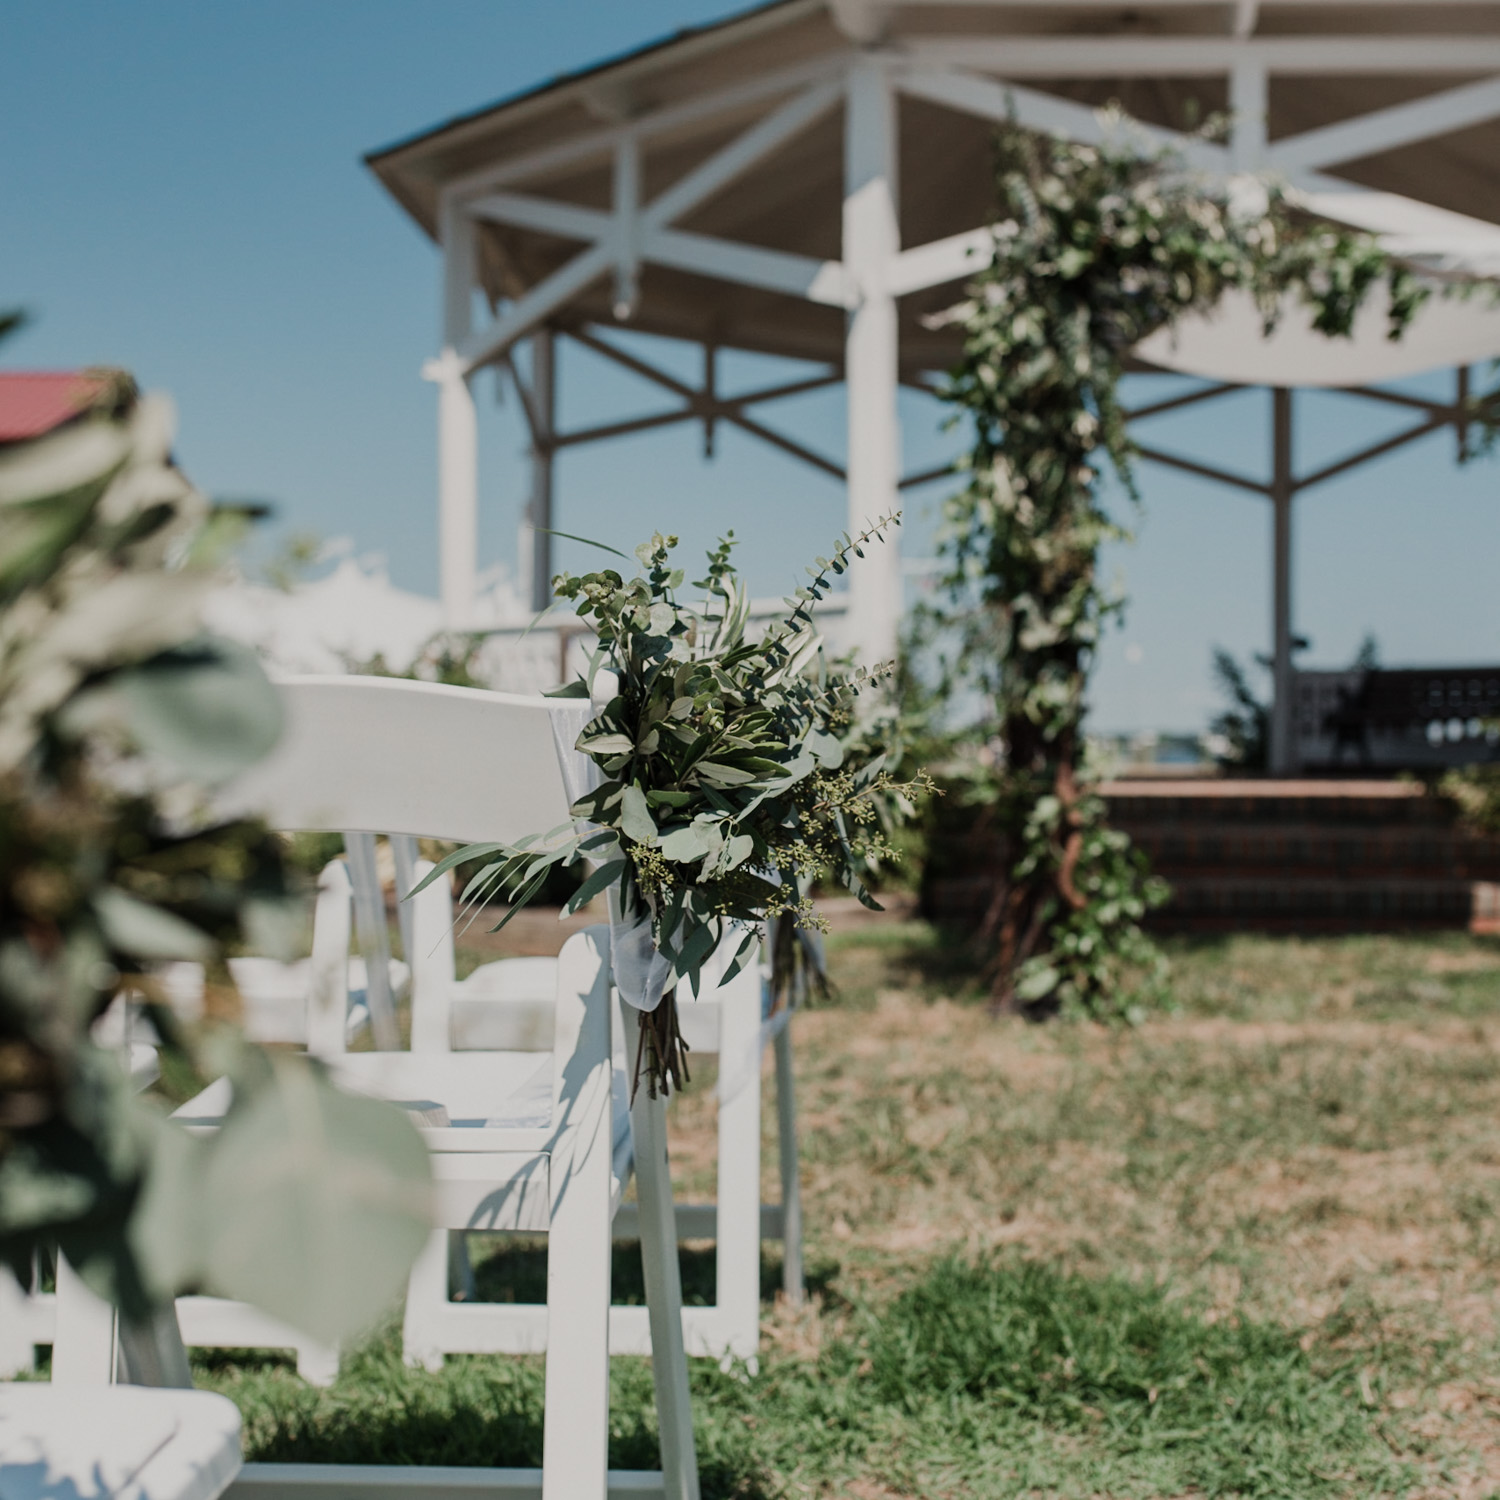 closeup of greenery decorations on wedding ceremony chairs